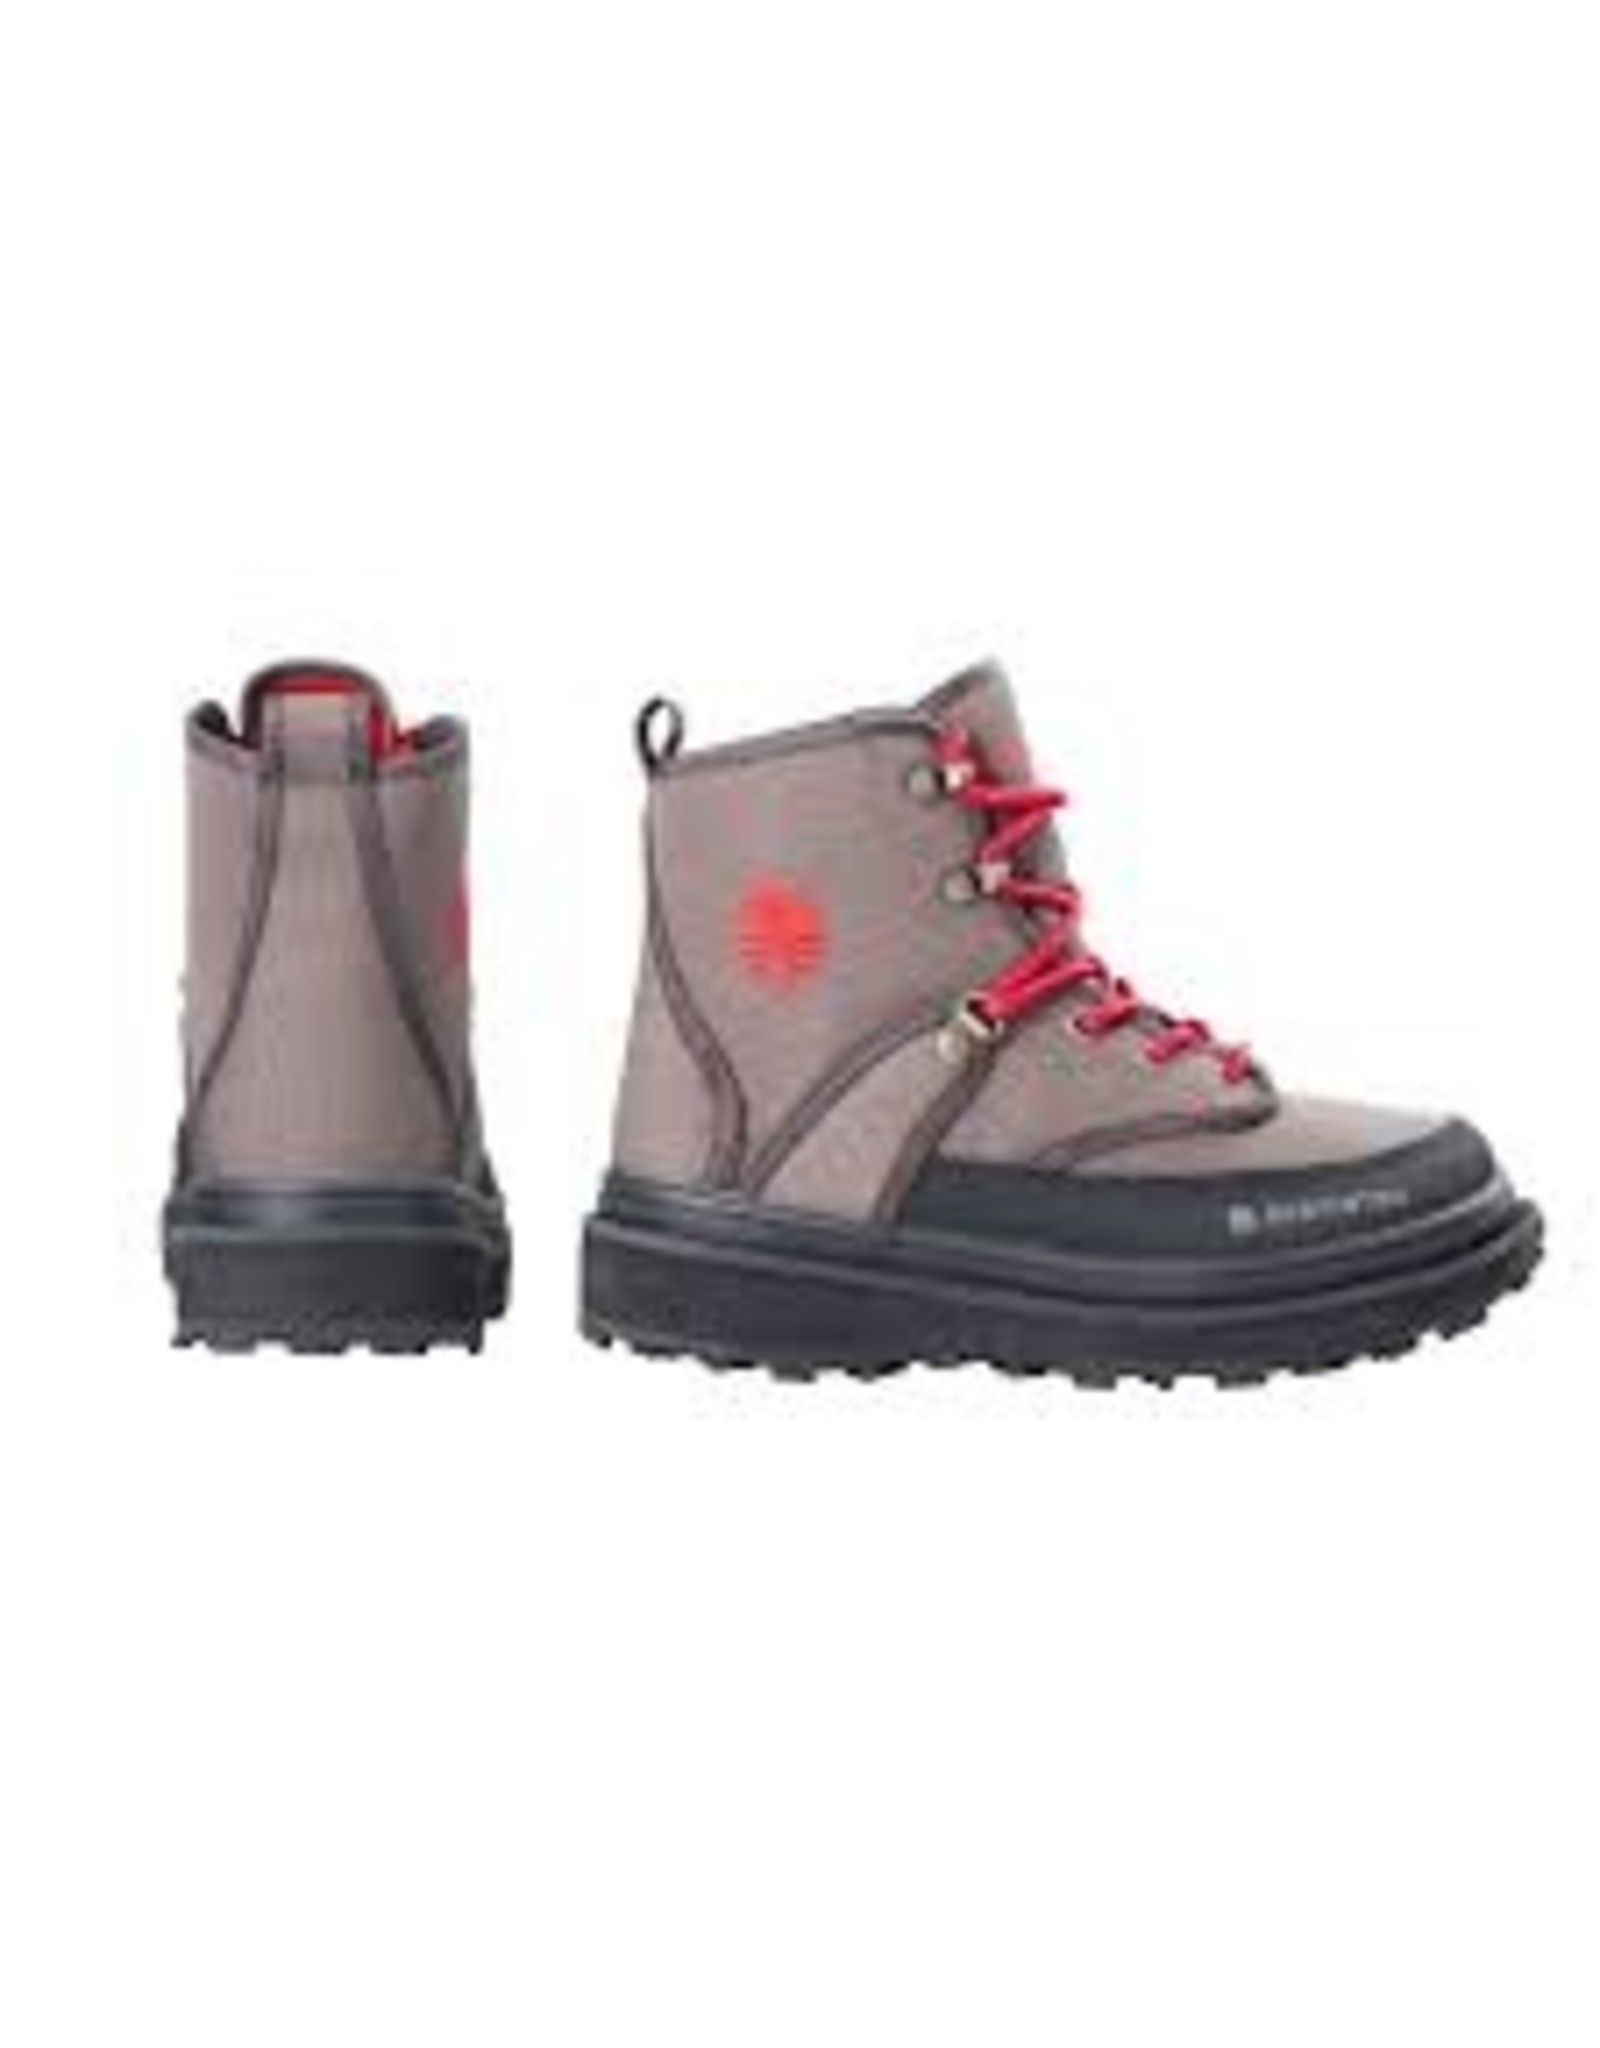 Redington Redington - Crosswater Youth Wading Boots - Sticky Rubber